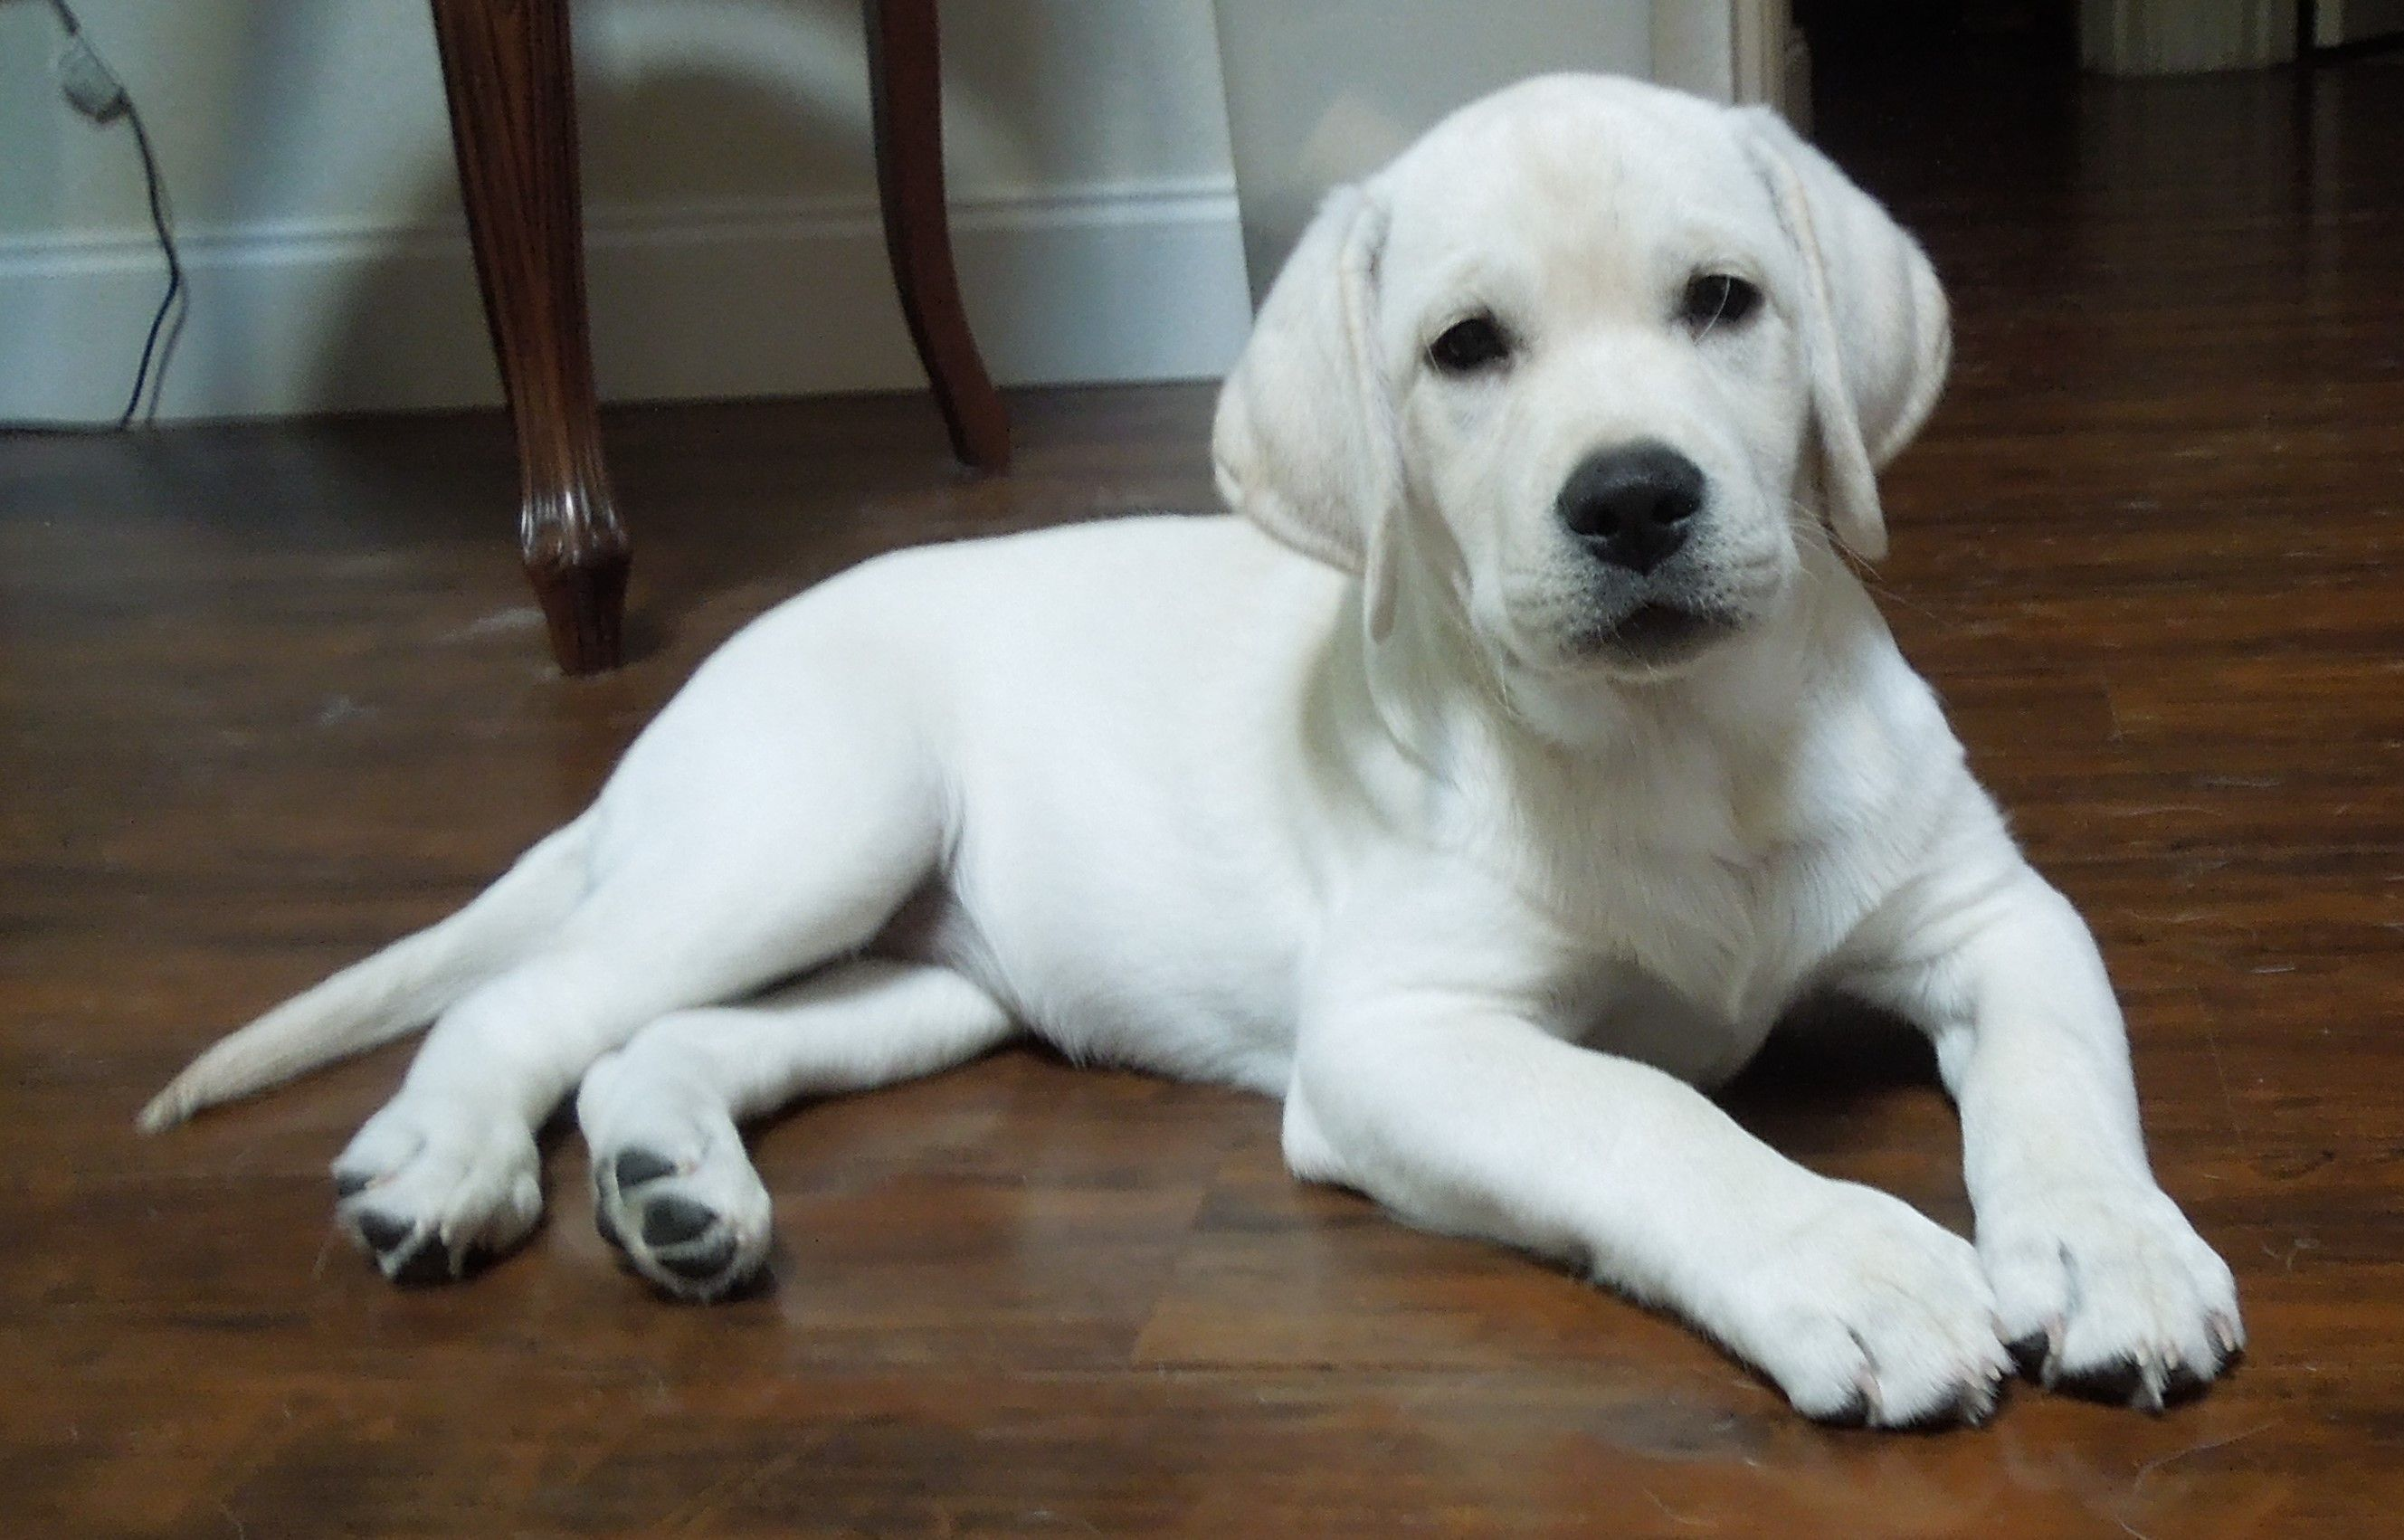 White lab puppies for sale near me